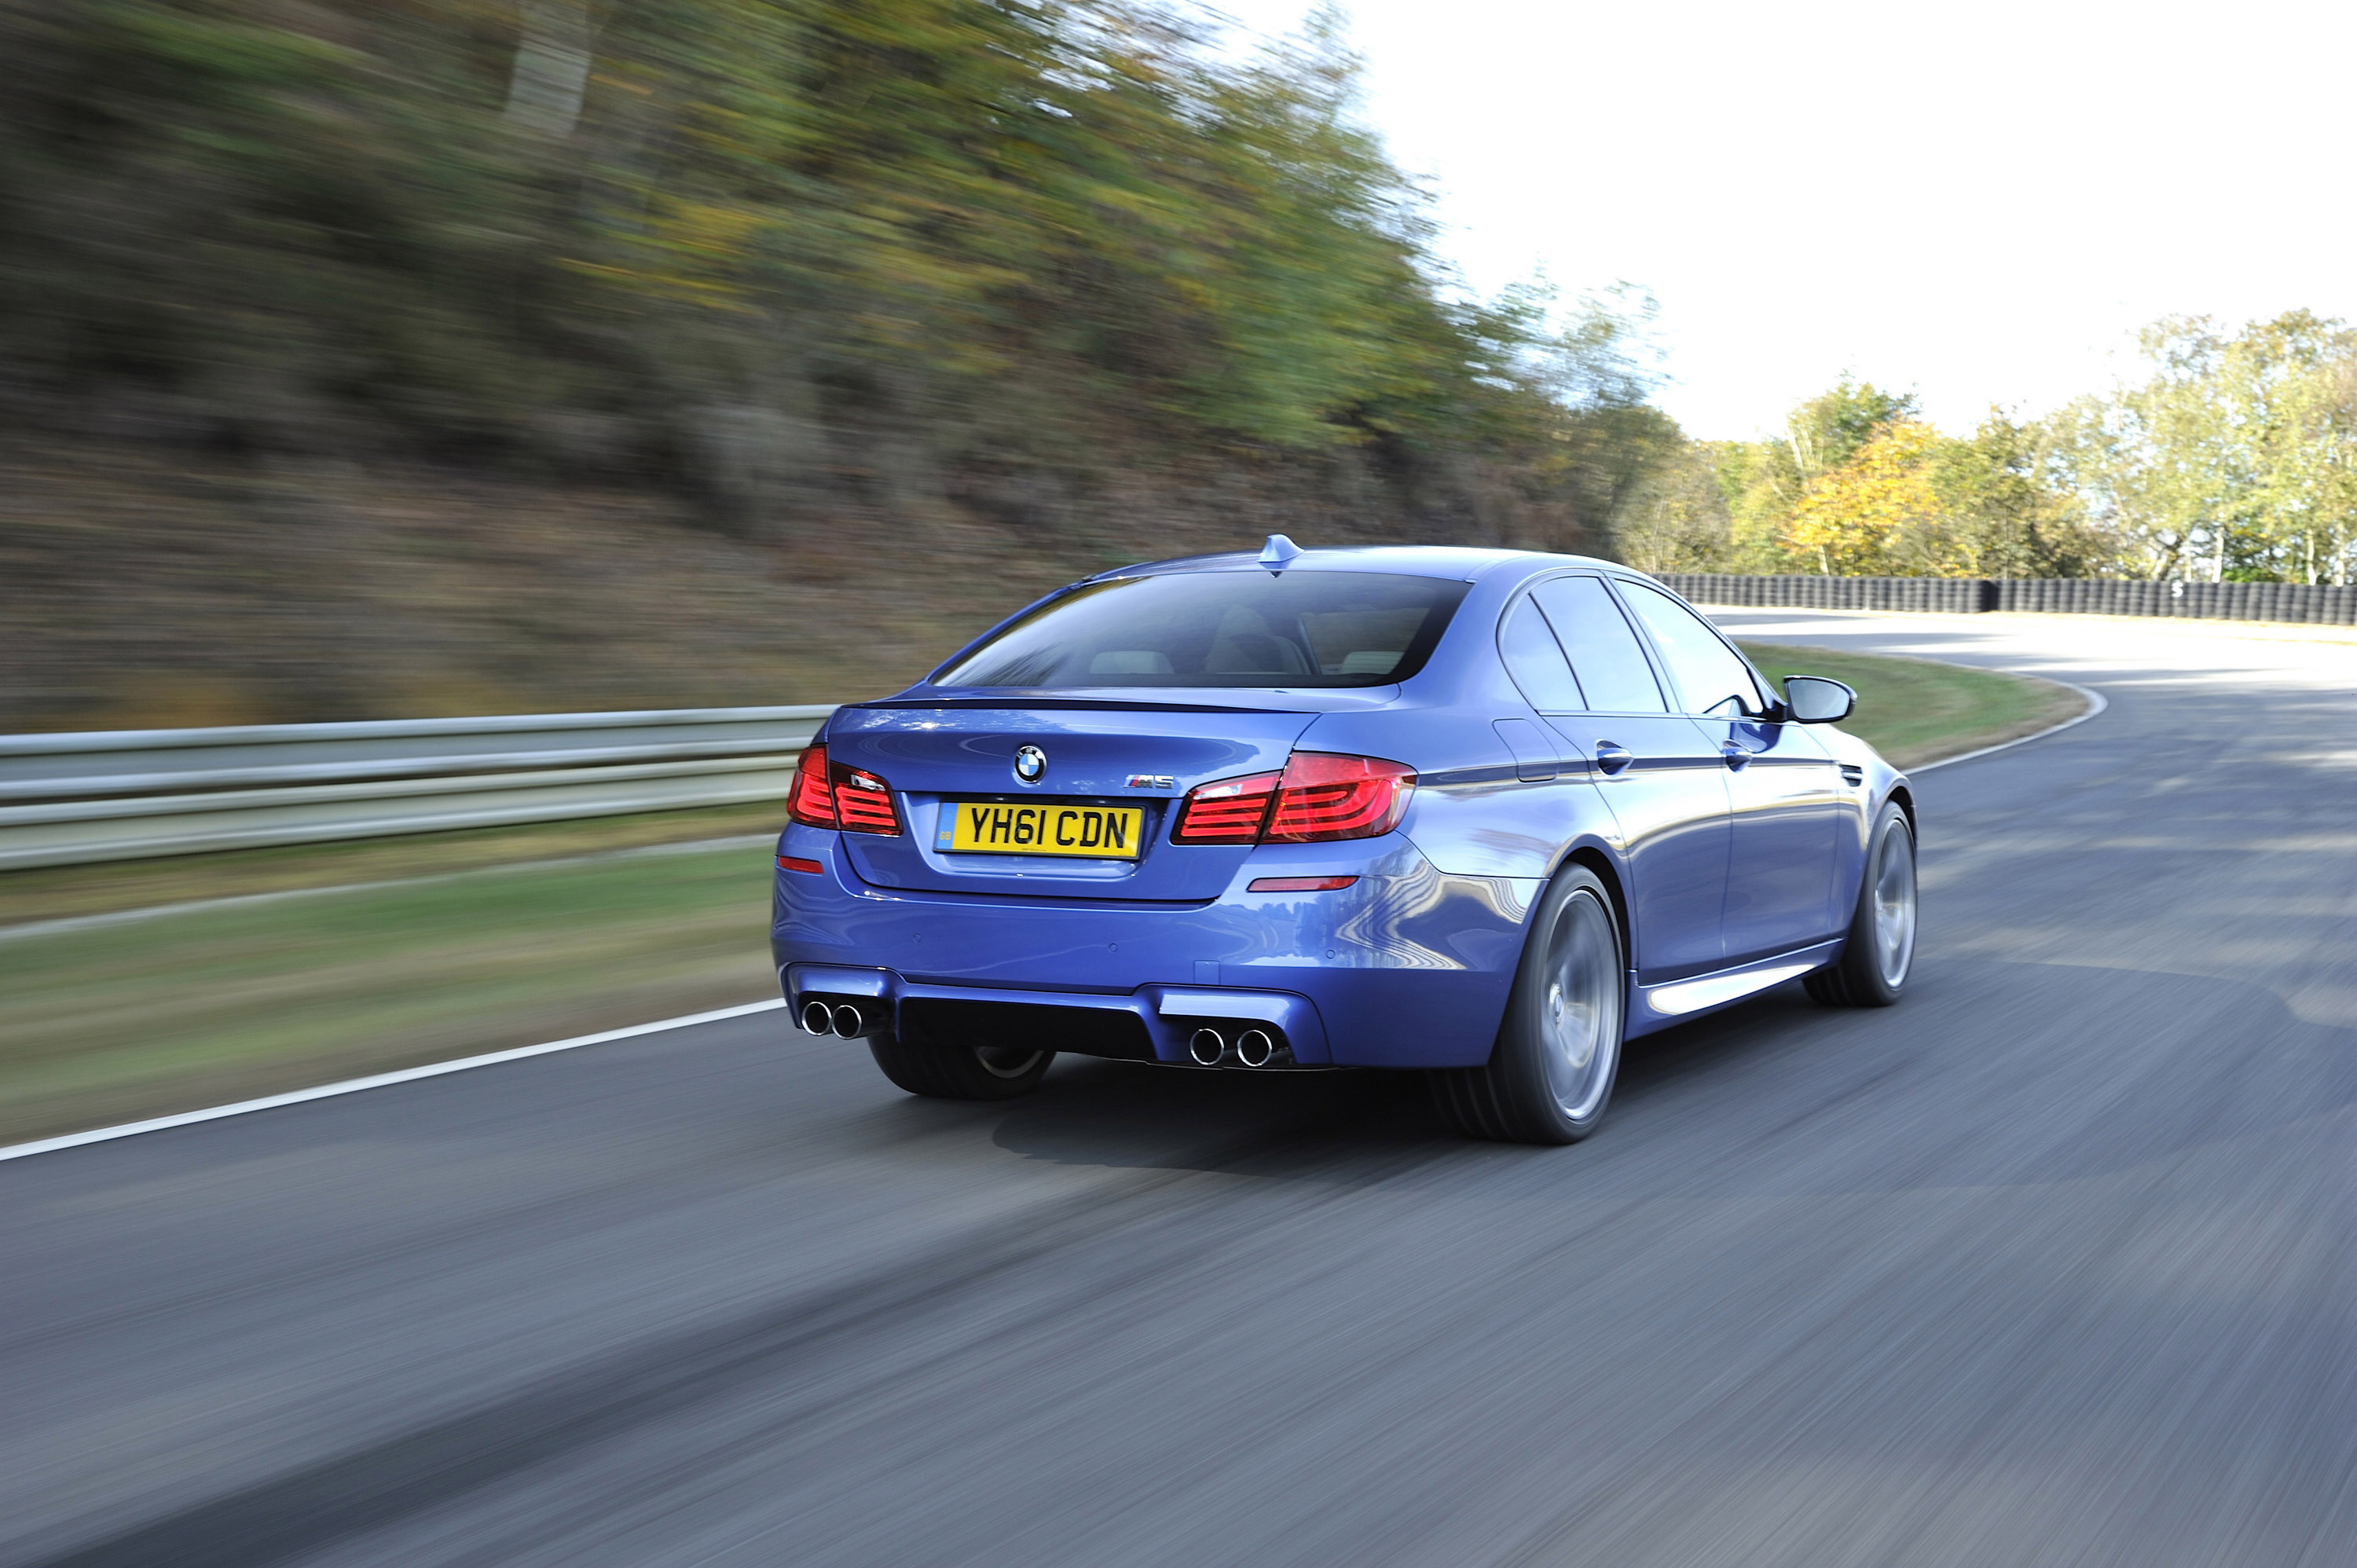 2012 BMW F10 M5 Saloon UK - Picture 60739